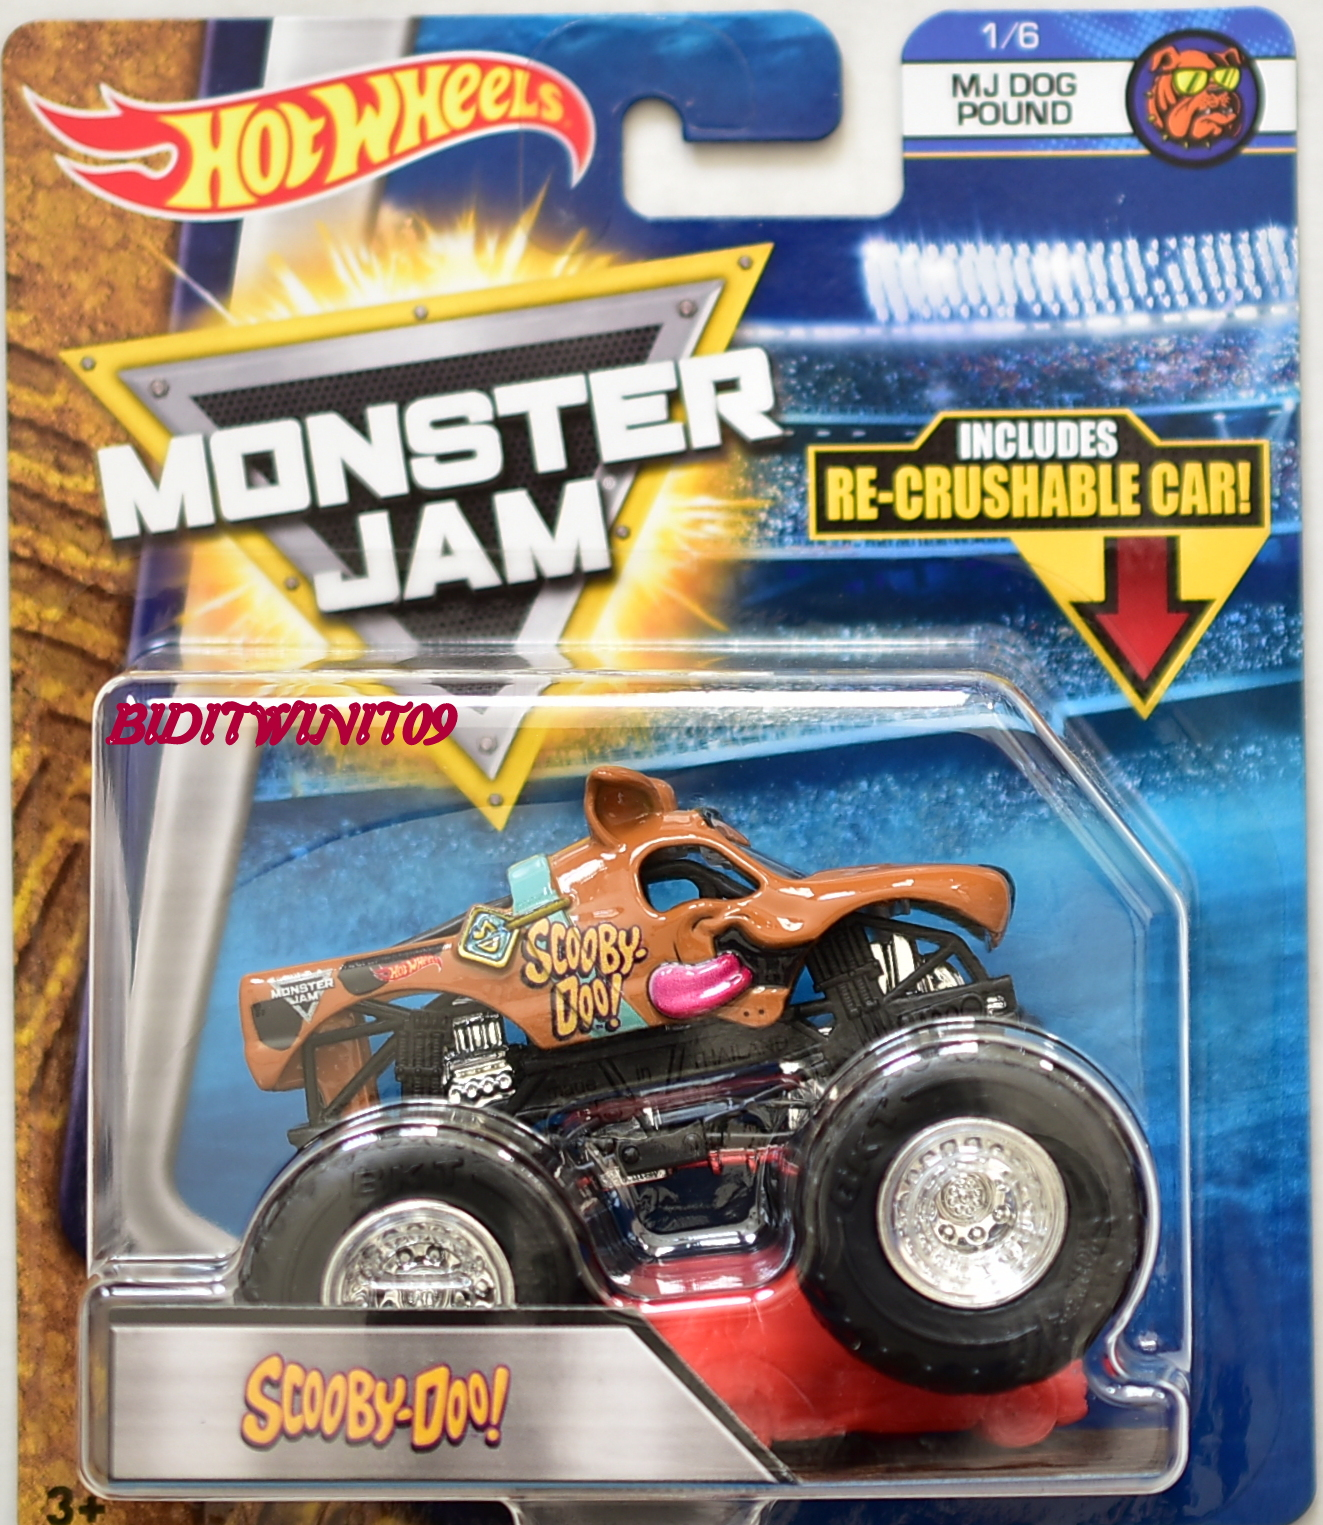 HOT WHEELS 2017 MONSTER JAM W/ RE-CRUSHABLE CAR SCOOBY-DOO MJ DOG POUND